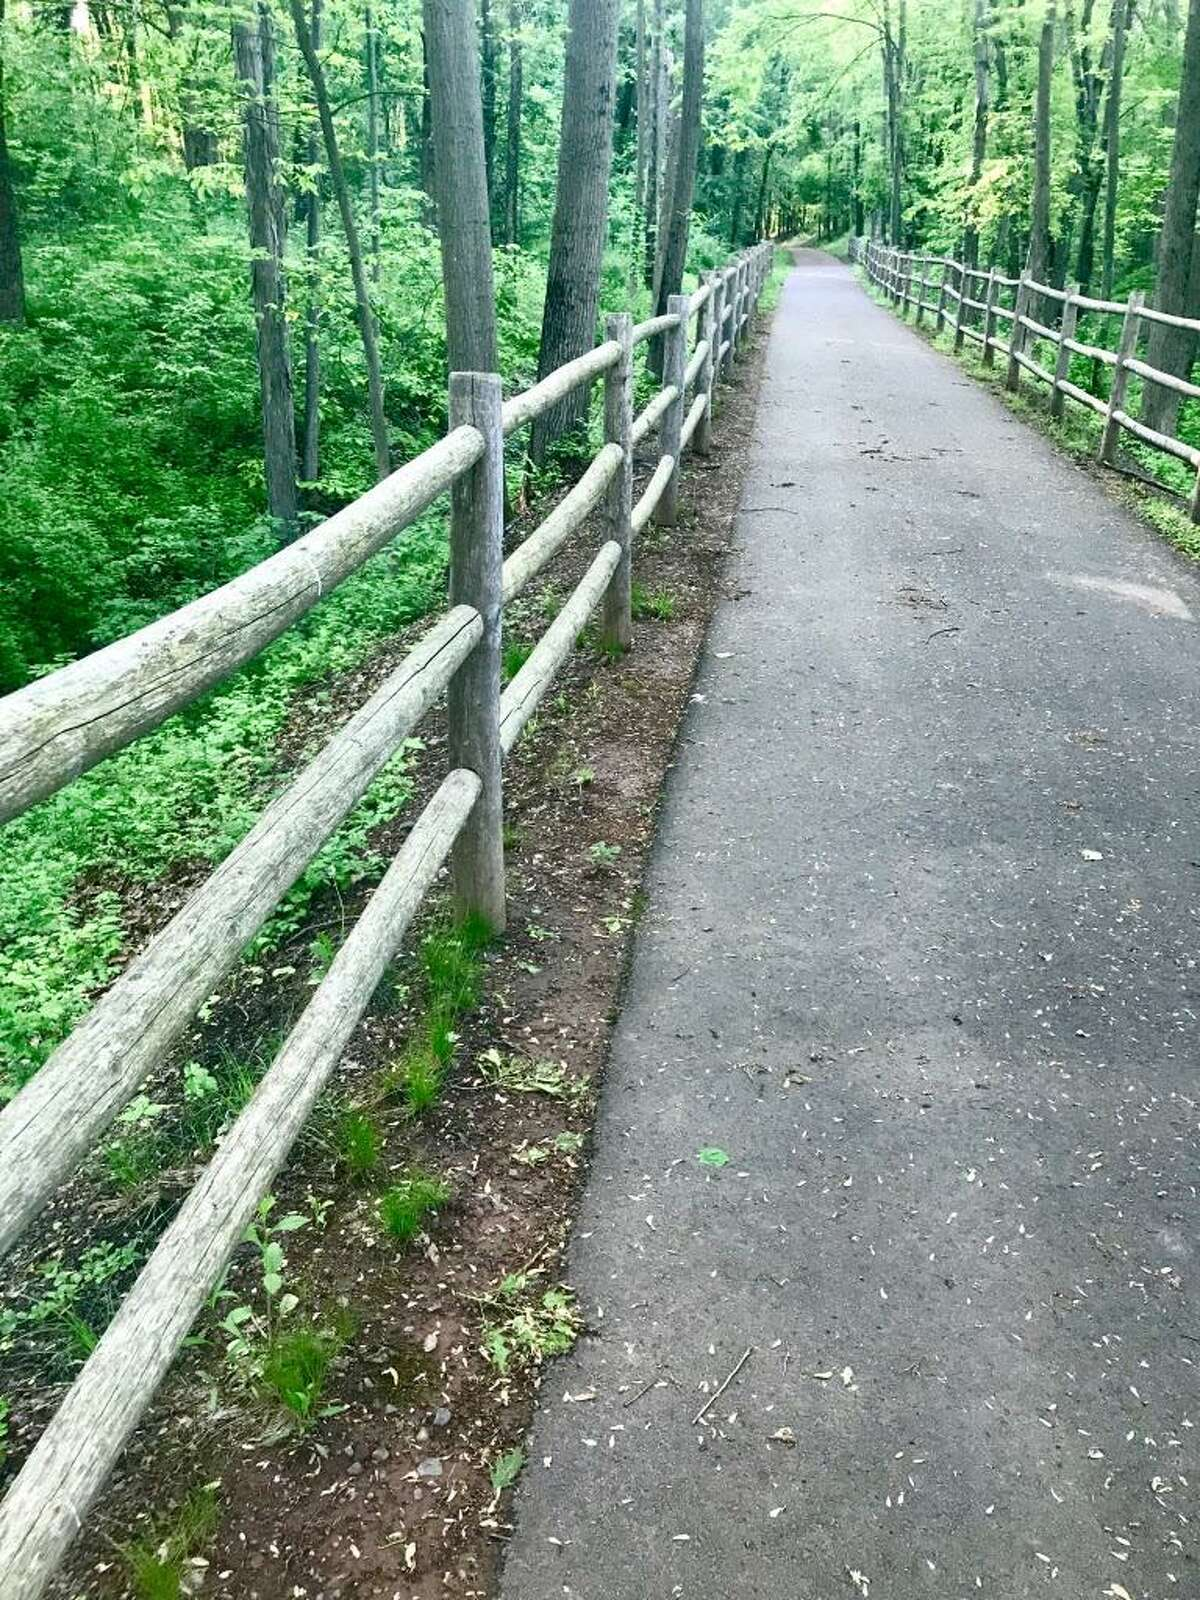 TheTuttle loop section of the Westlake and Mattabesset Bike and Walking Trail in Middletown